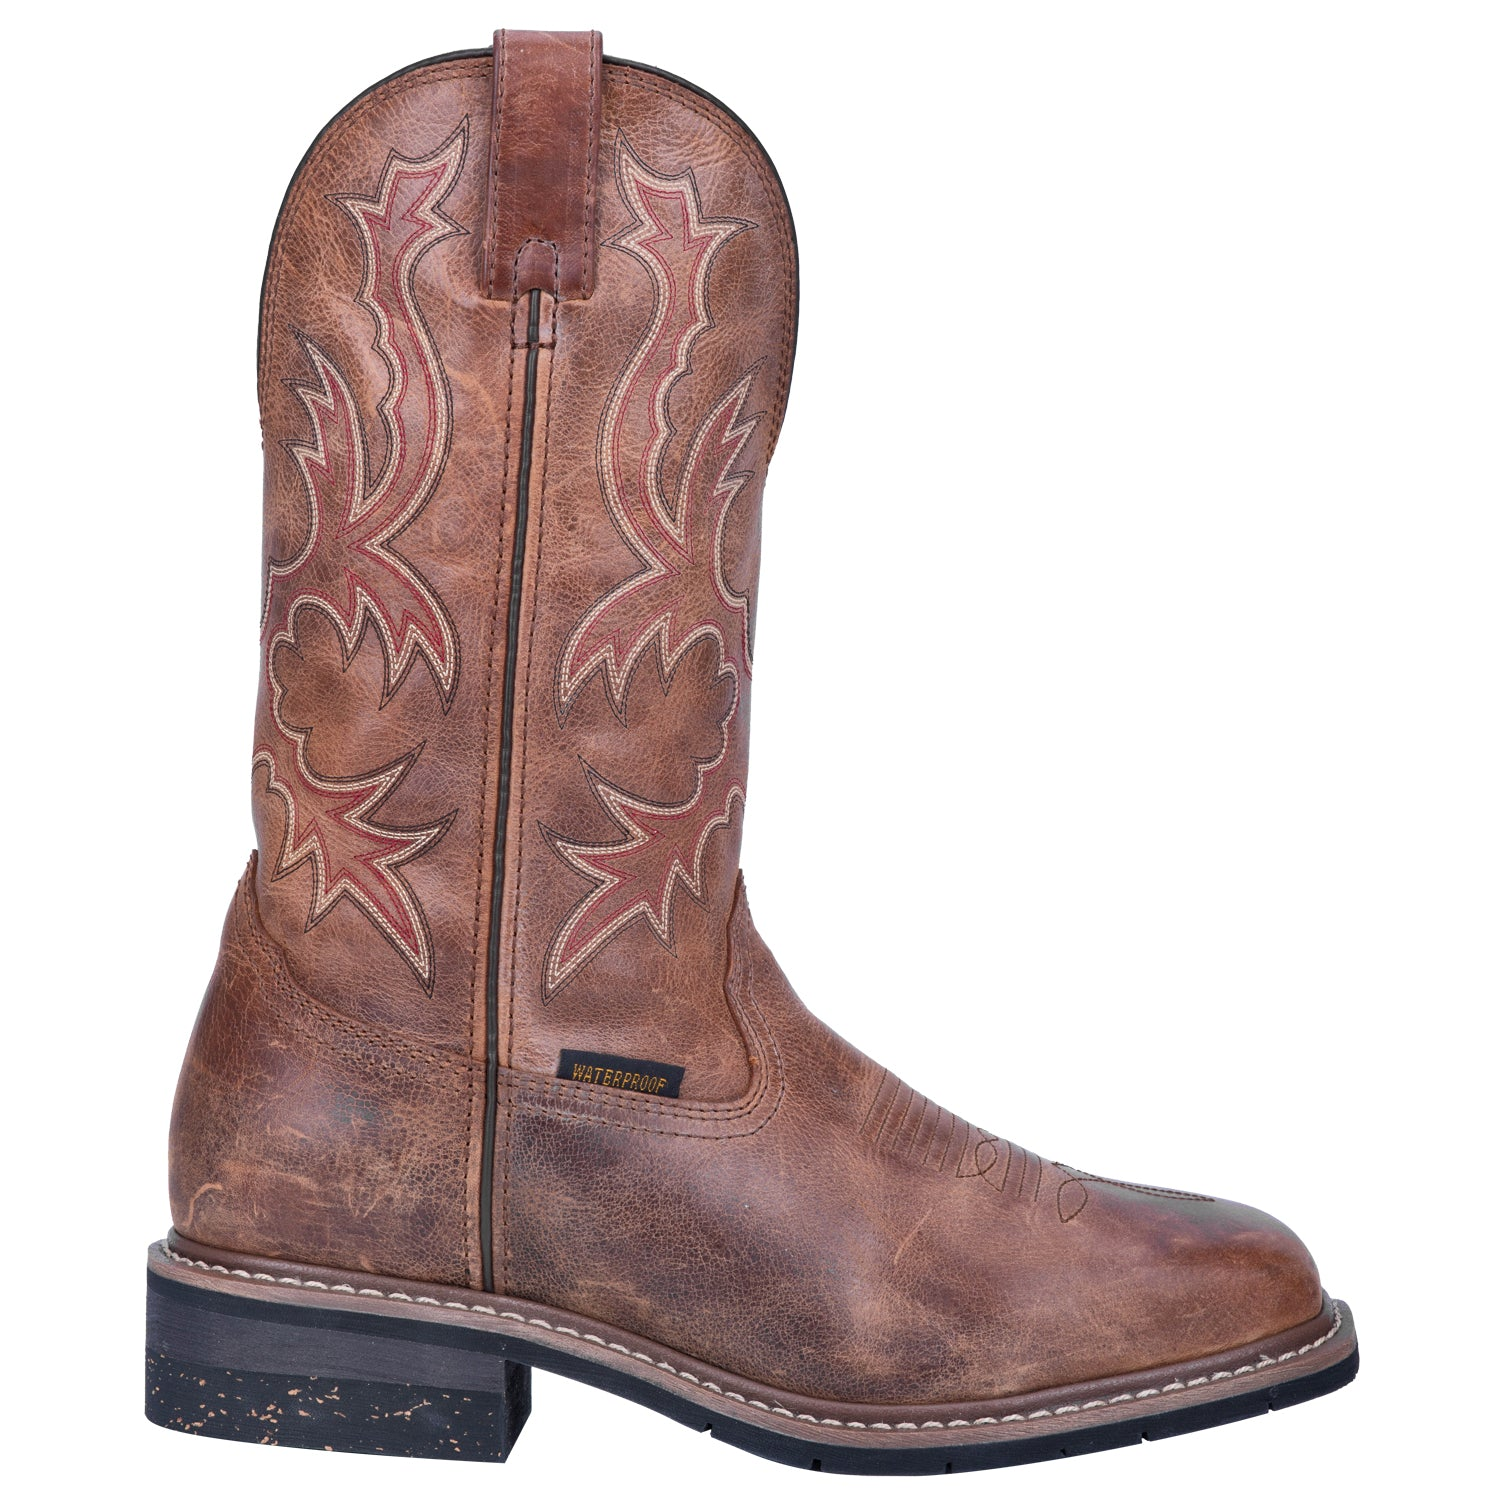 NOGALES WATERPROOF LEATHER BOOT 4253978918954